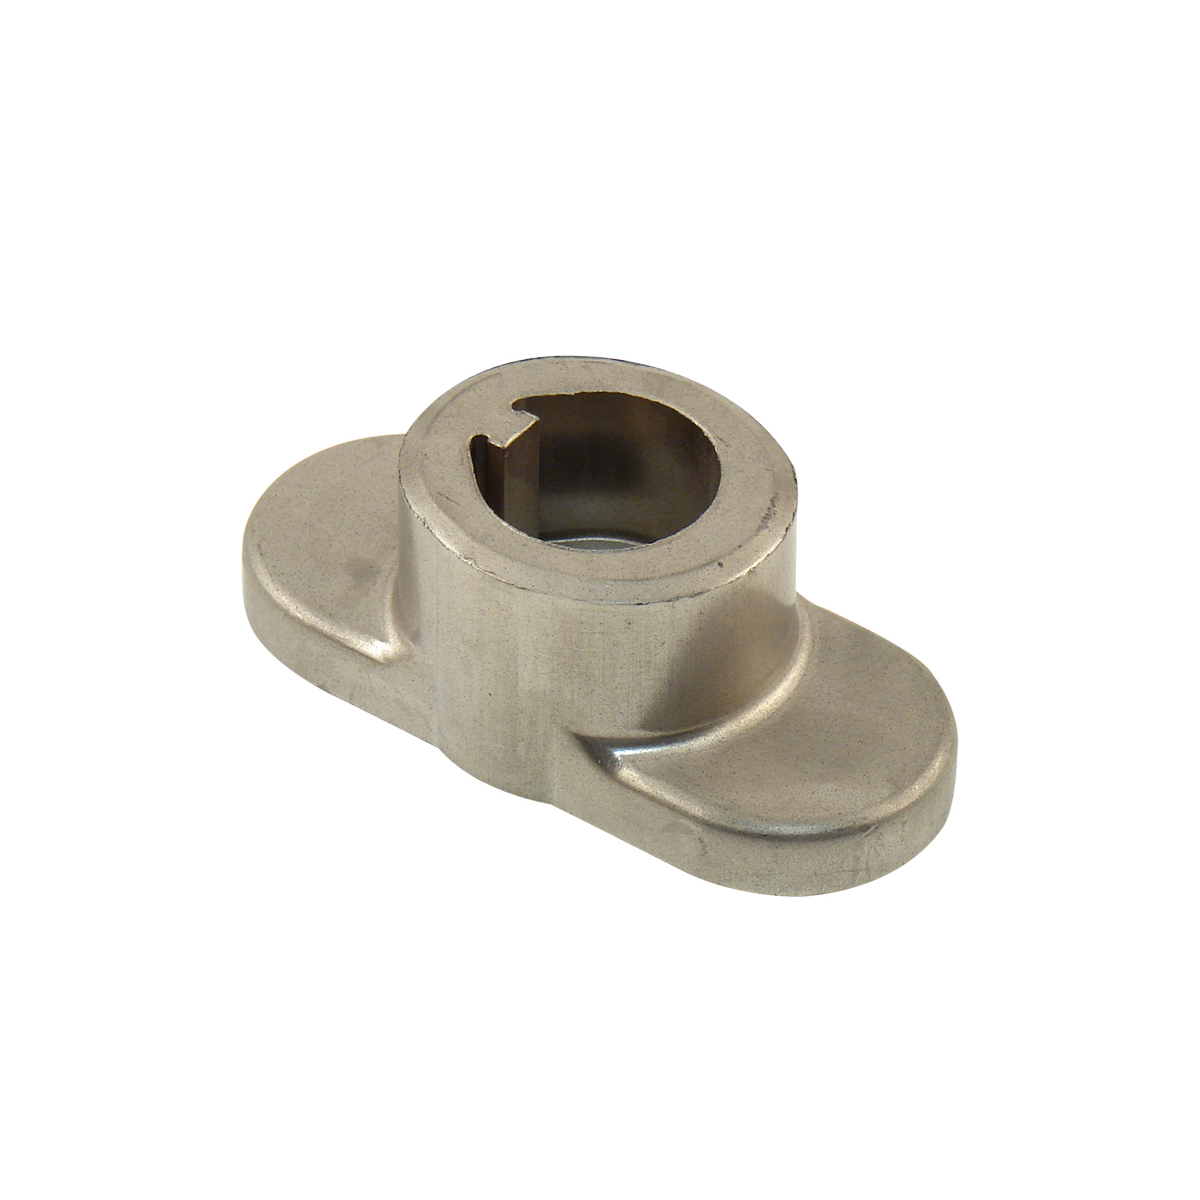 blade adapter (1.19 inch x 25 mm inside dia.) 748-04096